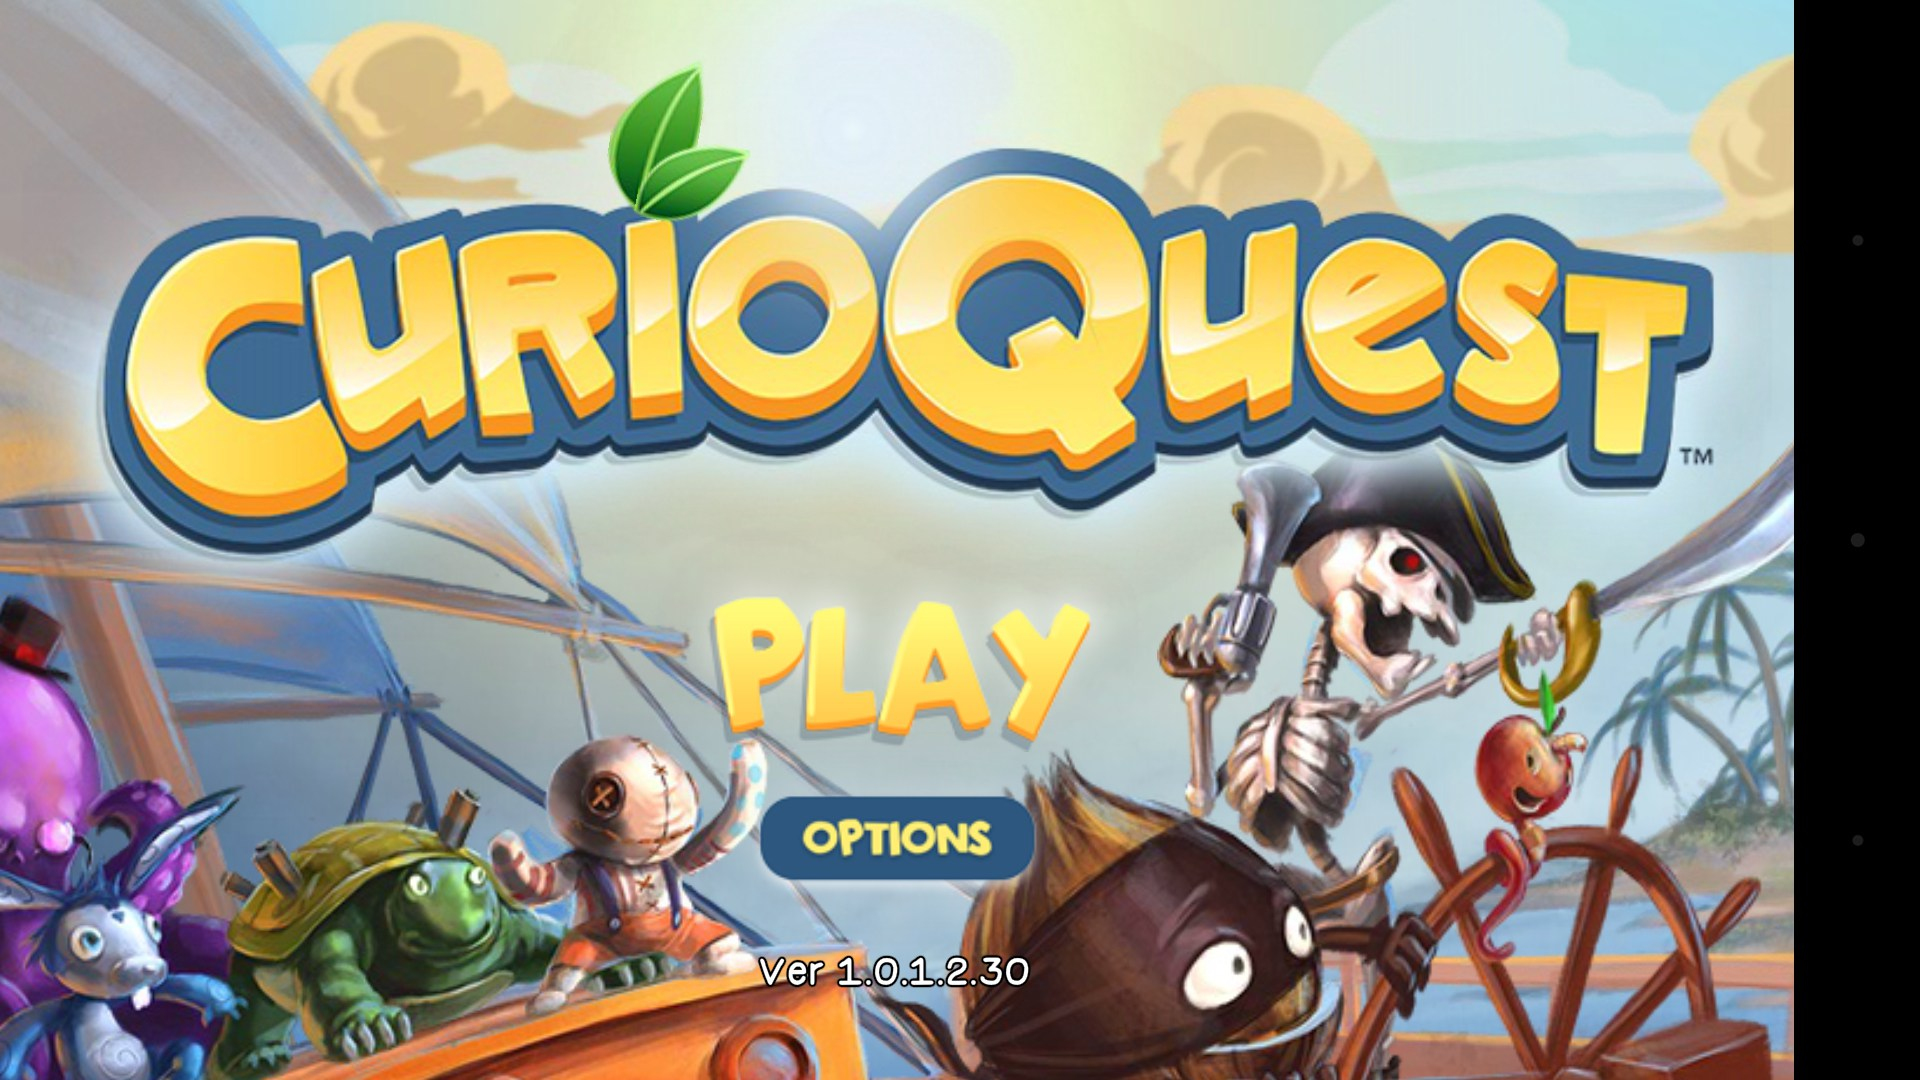 android games free download for samsung galaxy ace